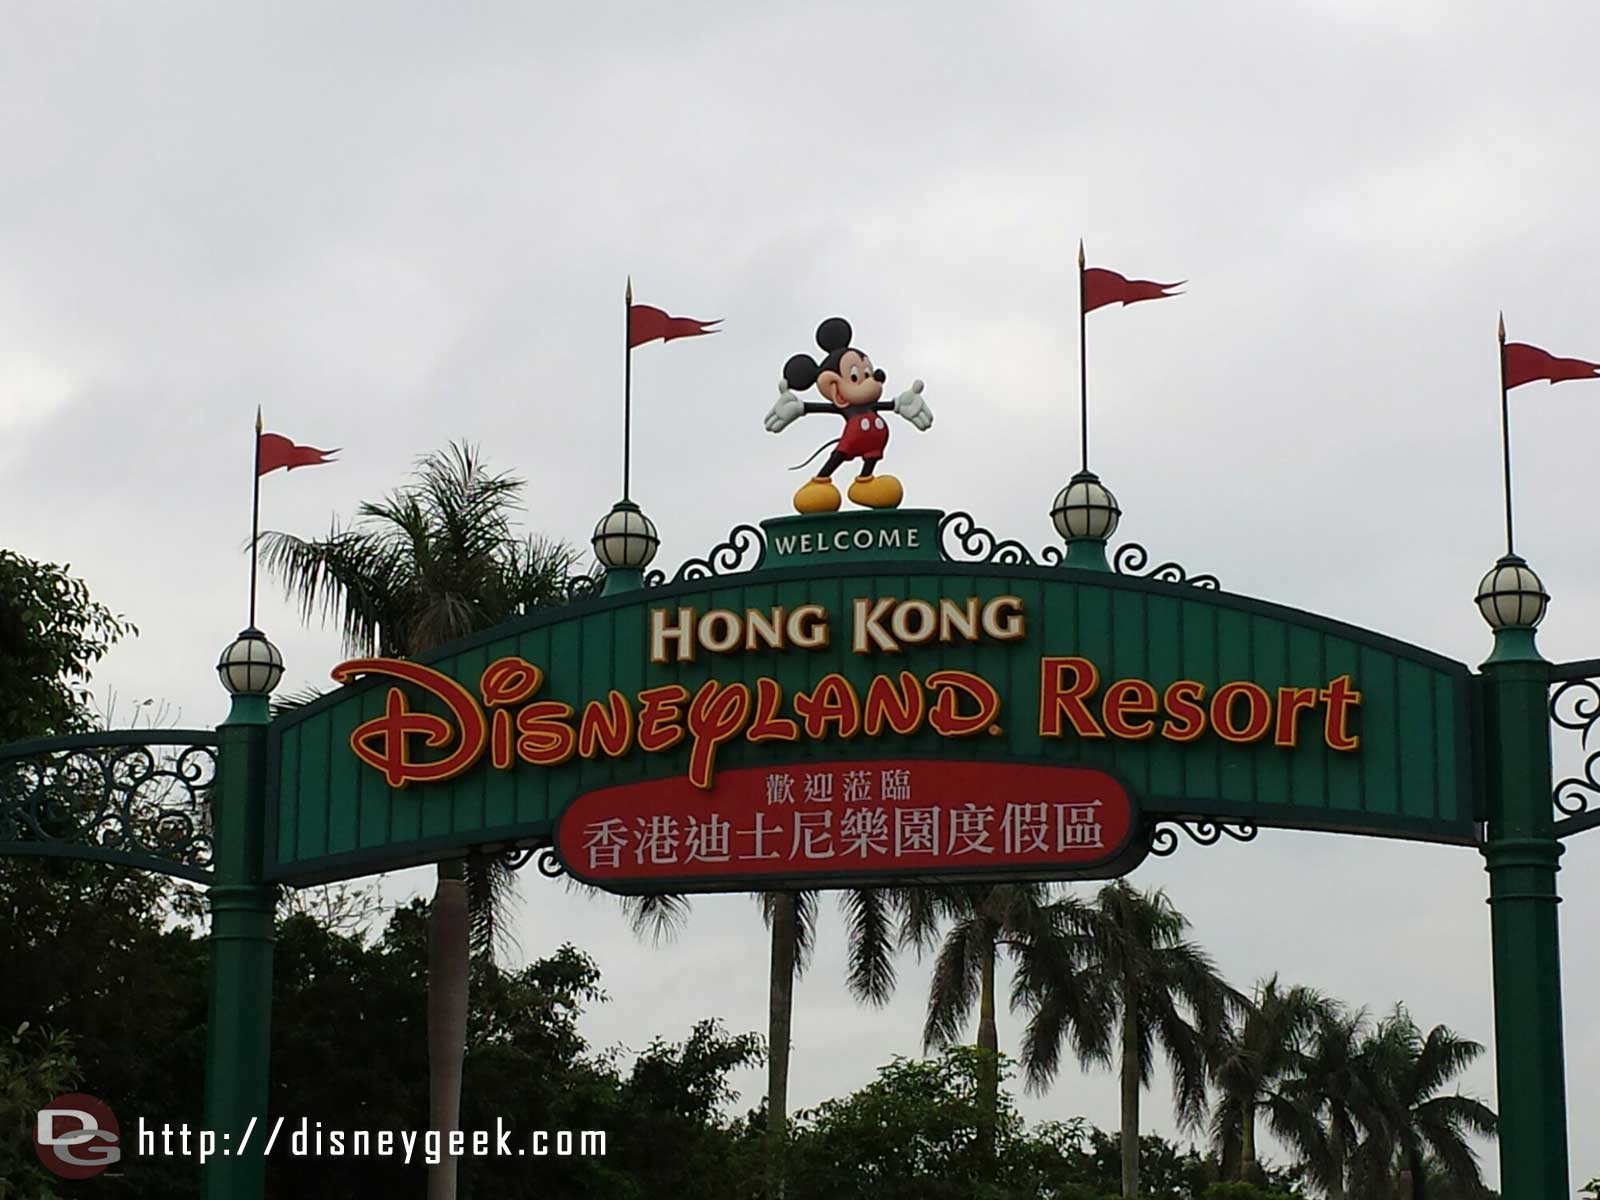 Welcome sign for Hong Kong Disneyland